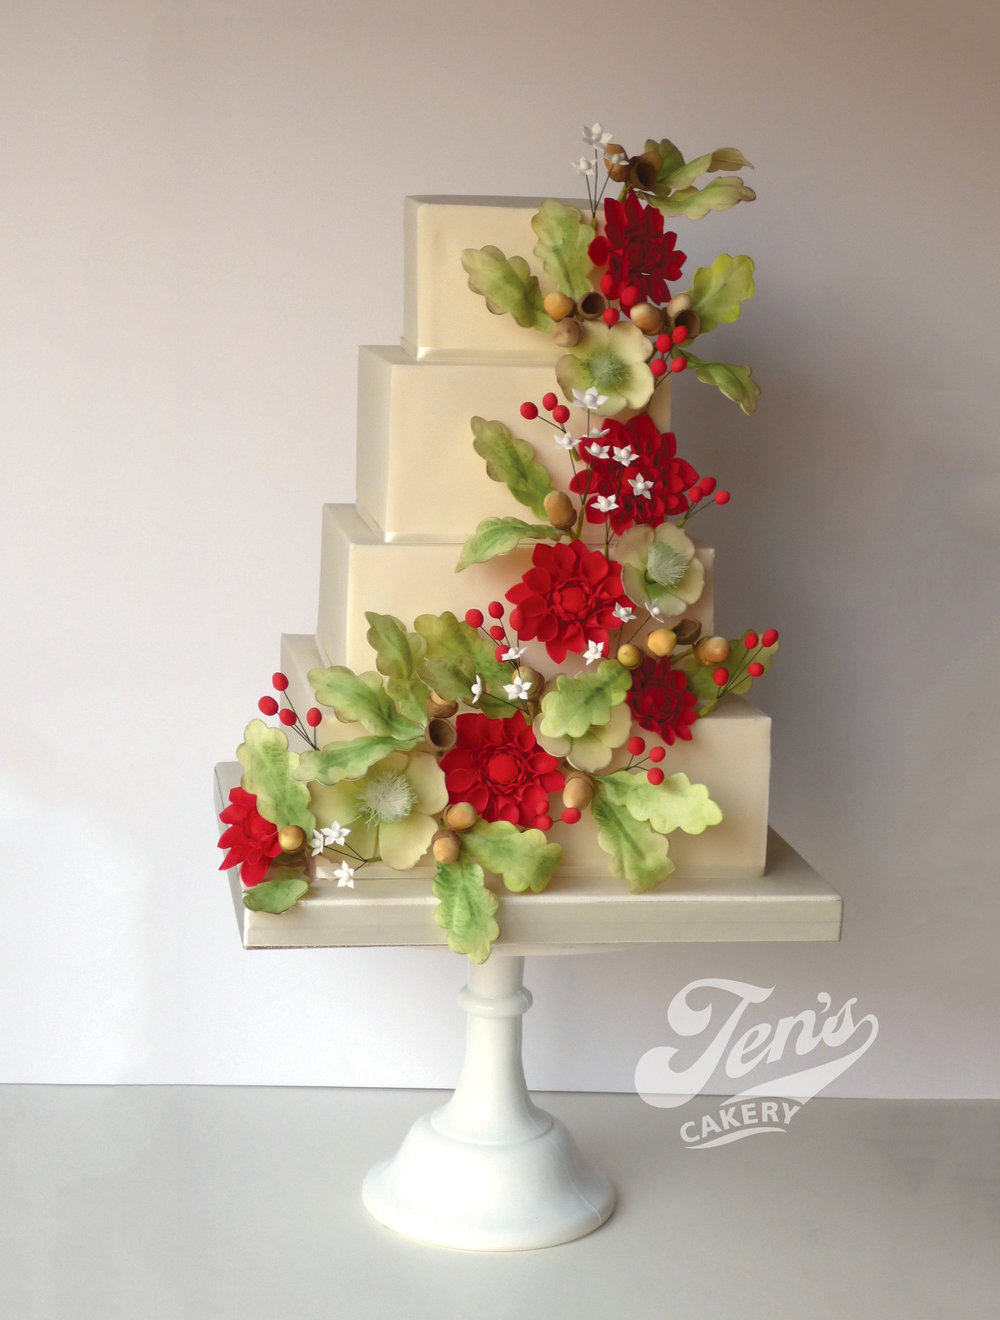 A square wedding cake with a cascade of green foliage and red crysanthamums.